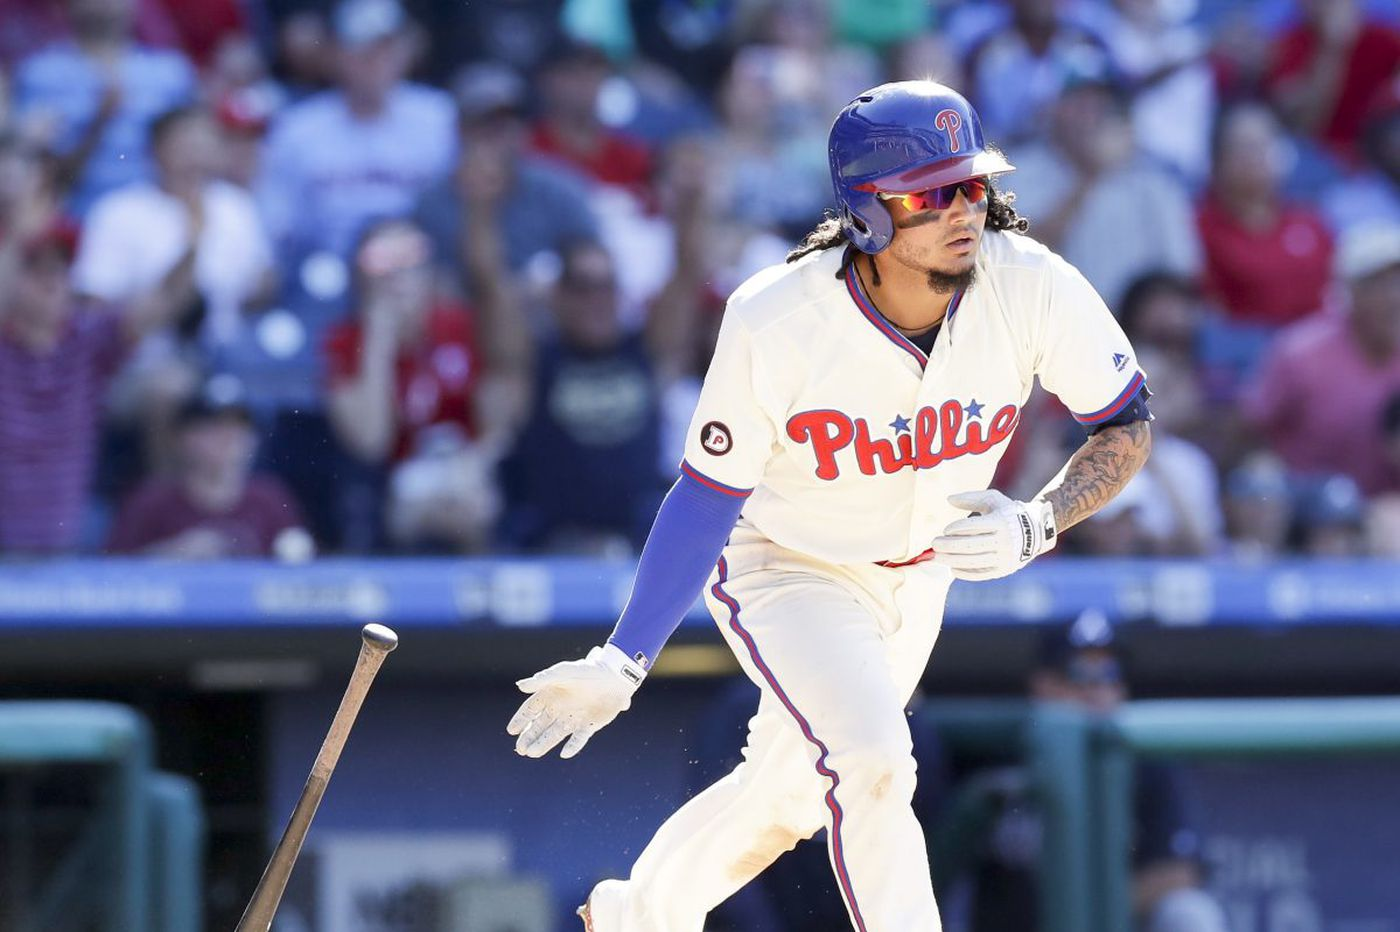 Vince Velasquez fires 7 shutout innings as Phillies walk off with win